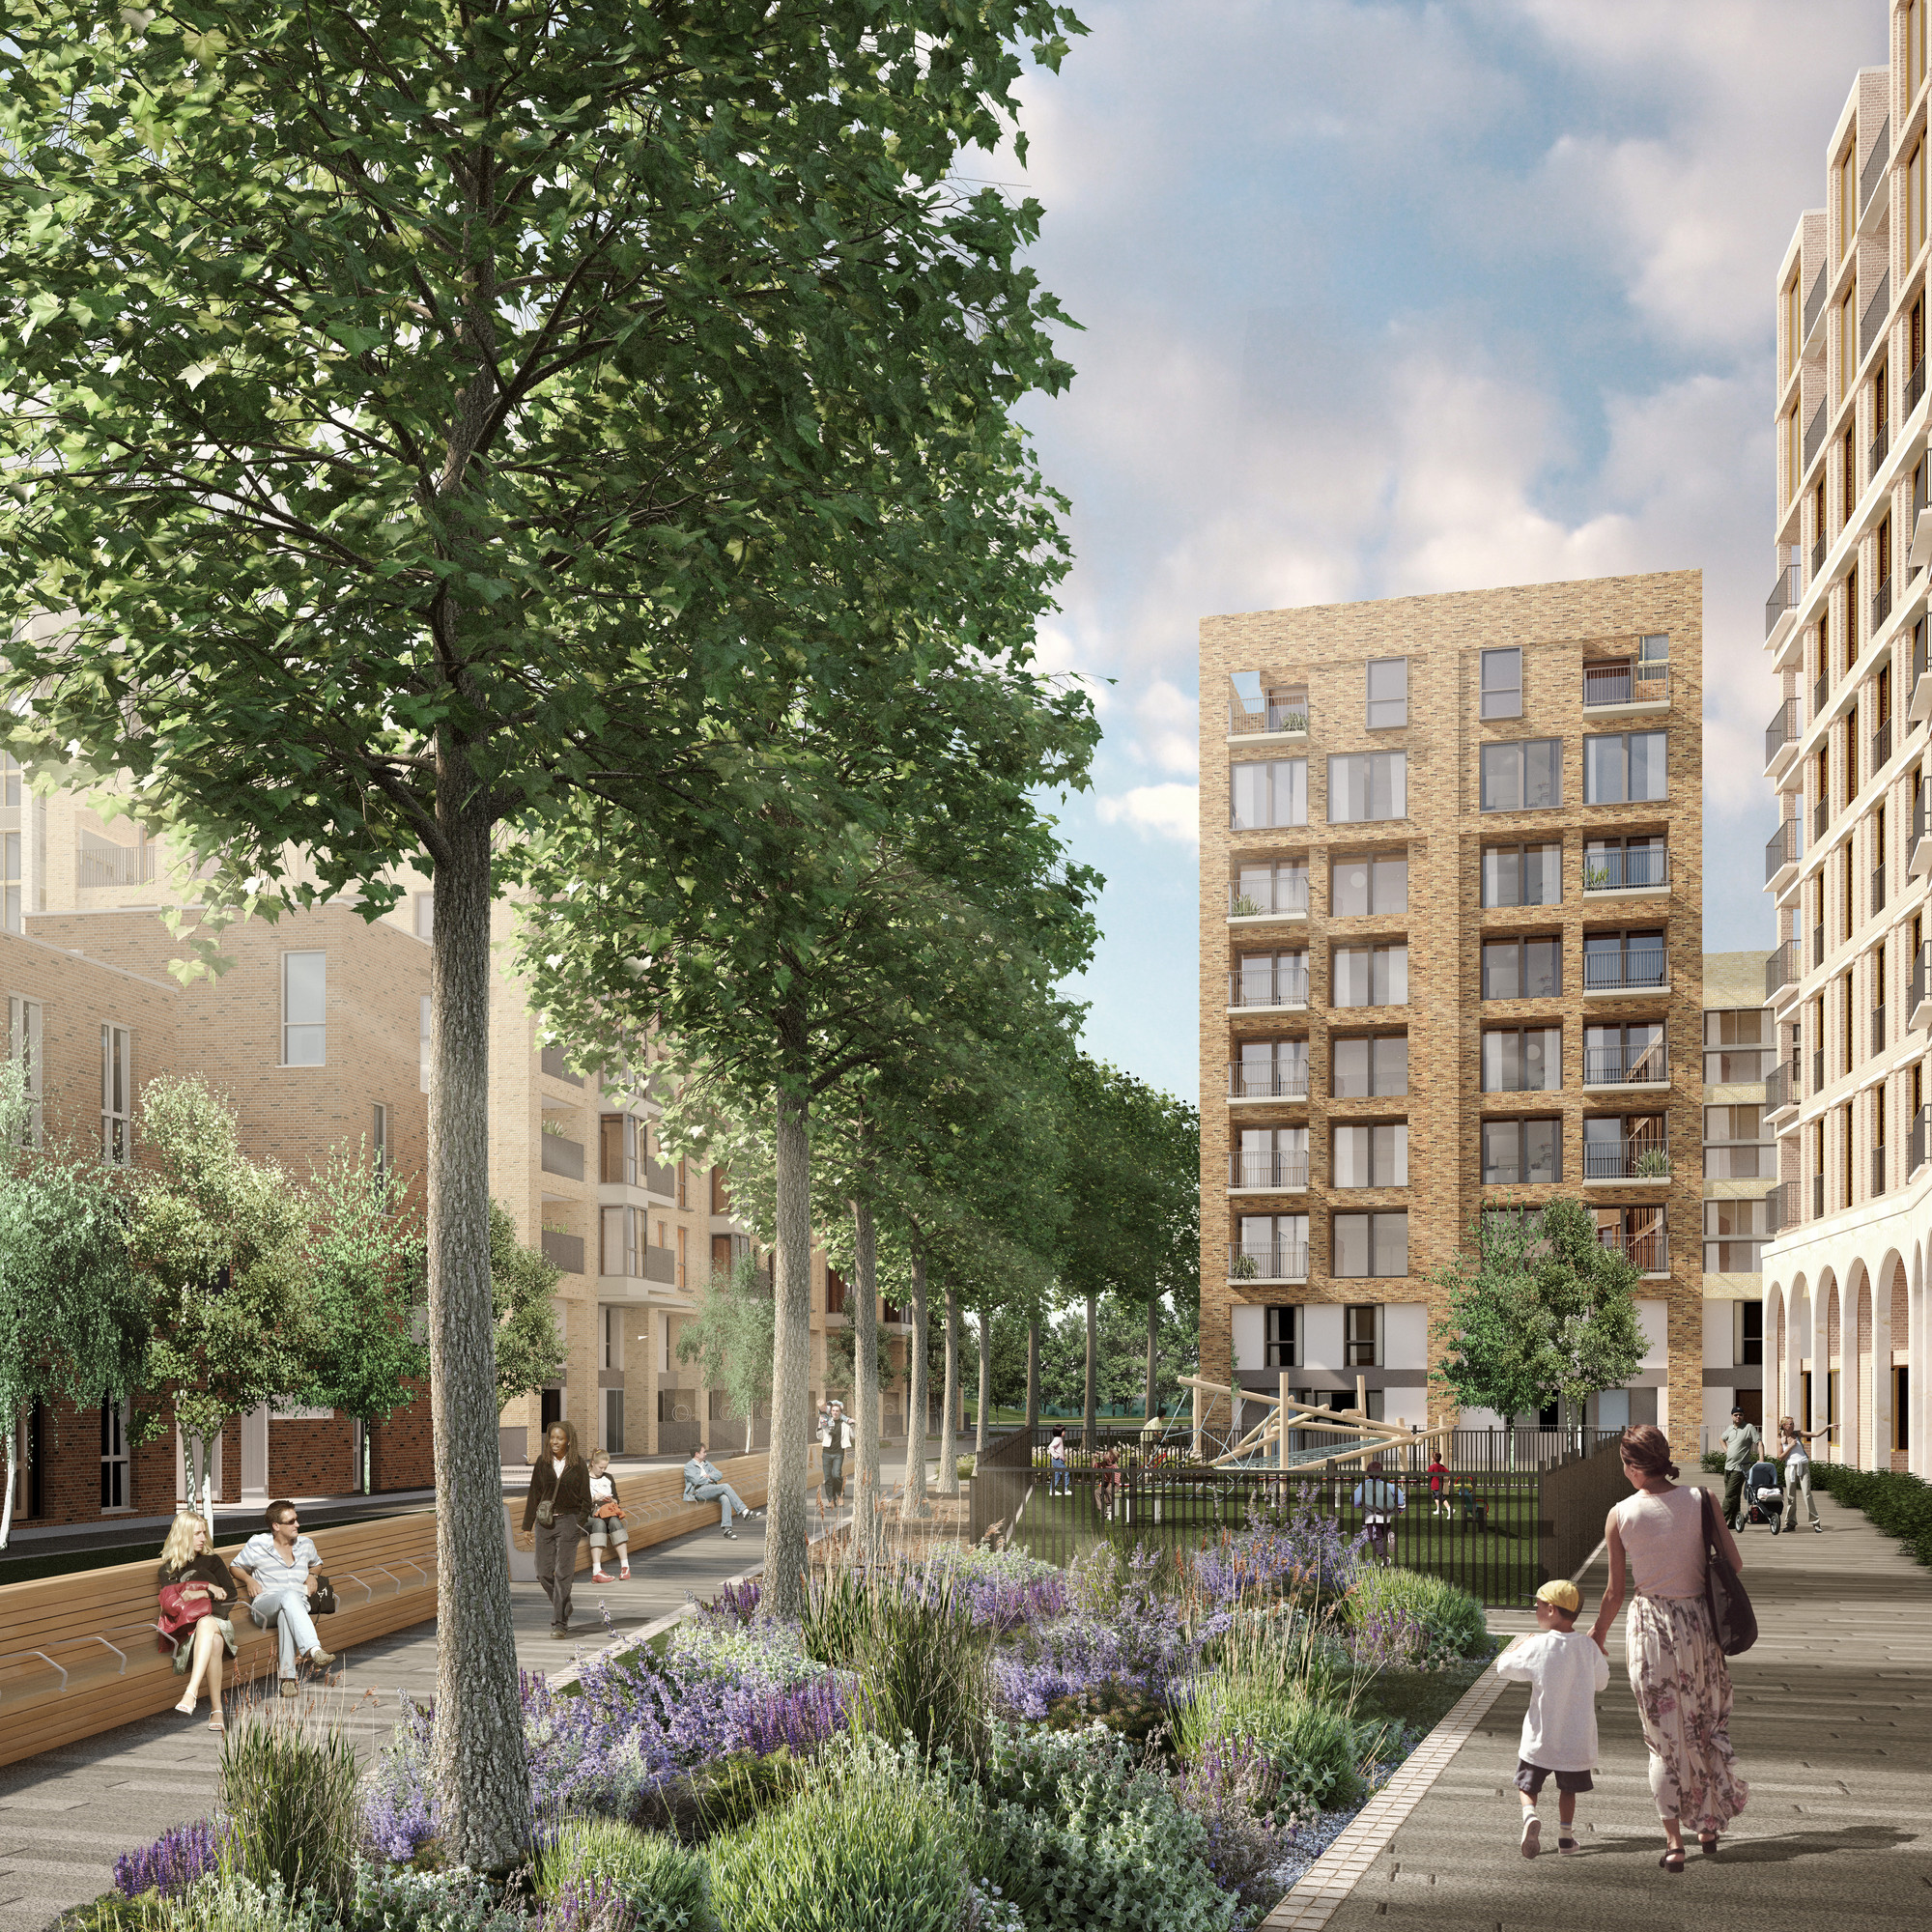 HTA Design to Lead Regeneration of Aylesbury Estate in London, View of the first phase of the development. Image Courtesy of HTA Design